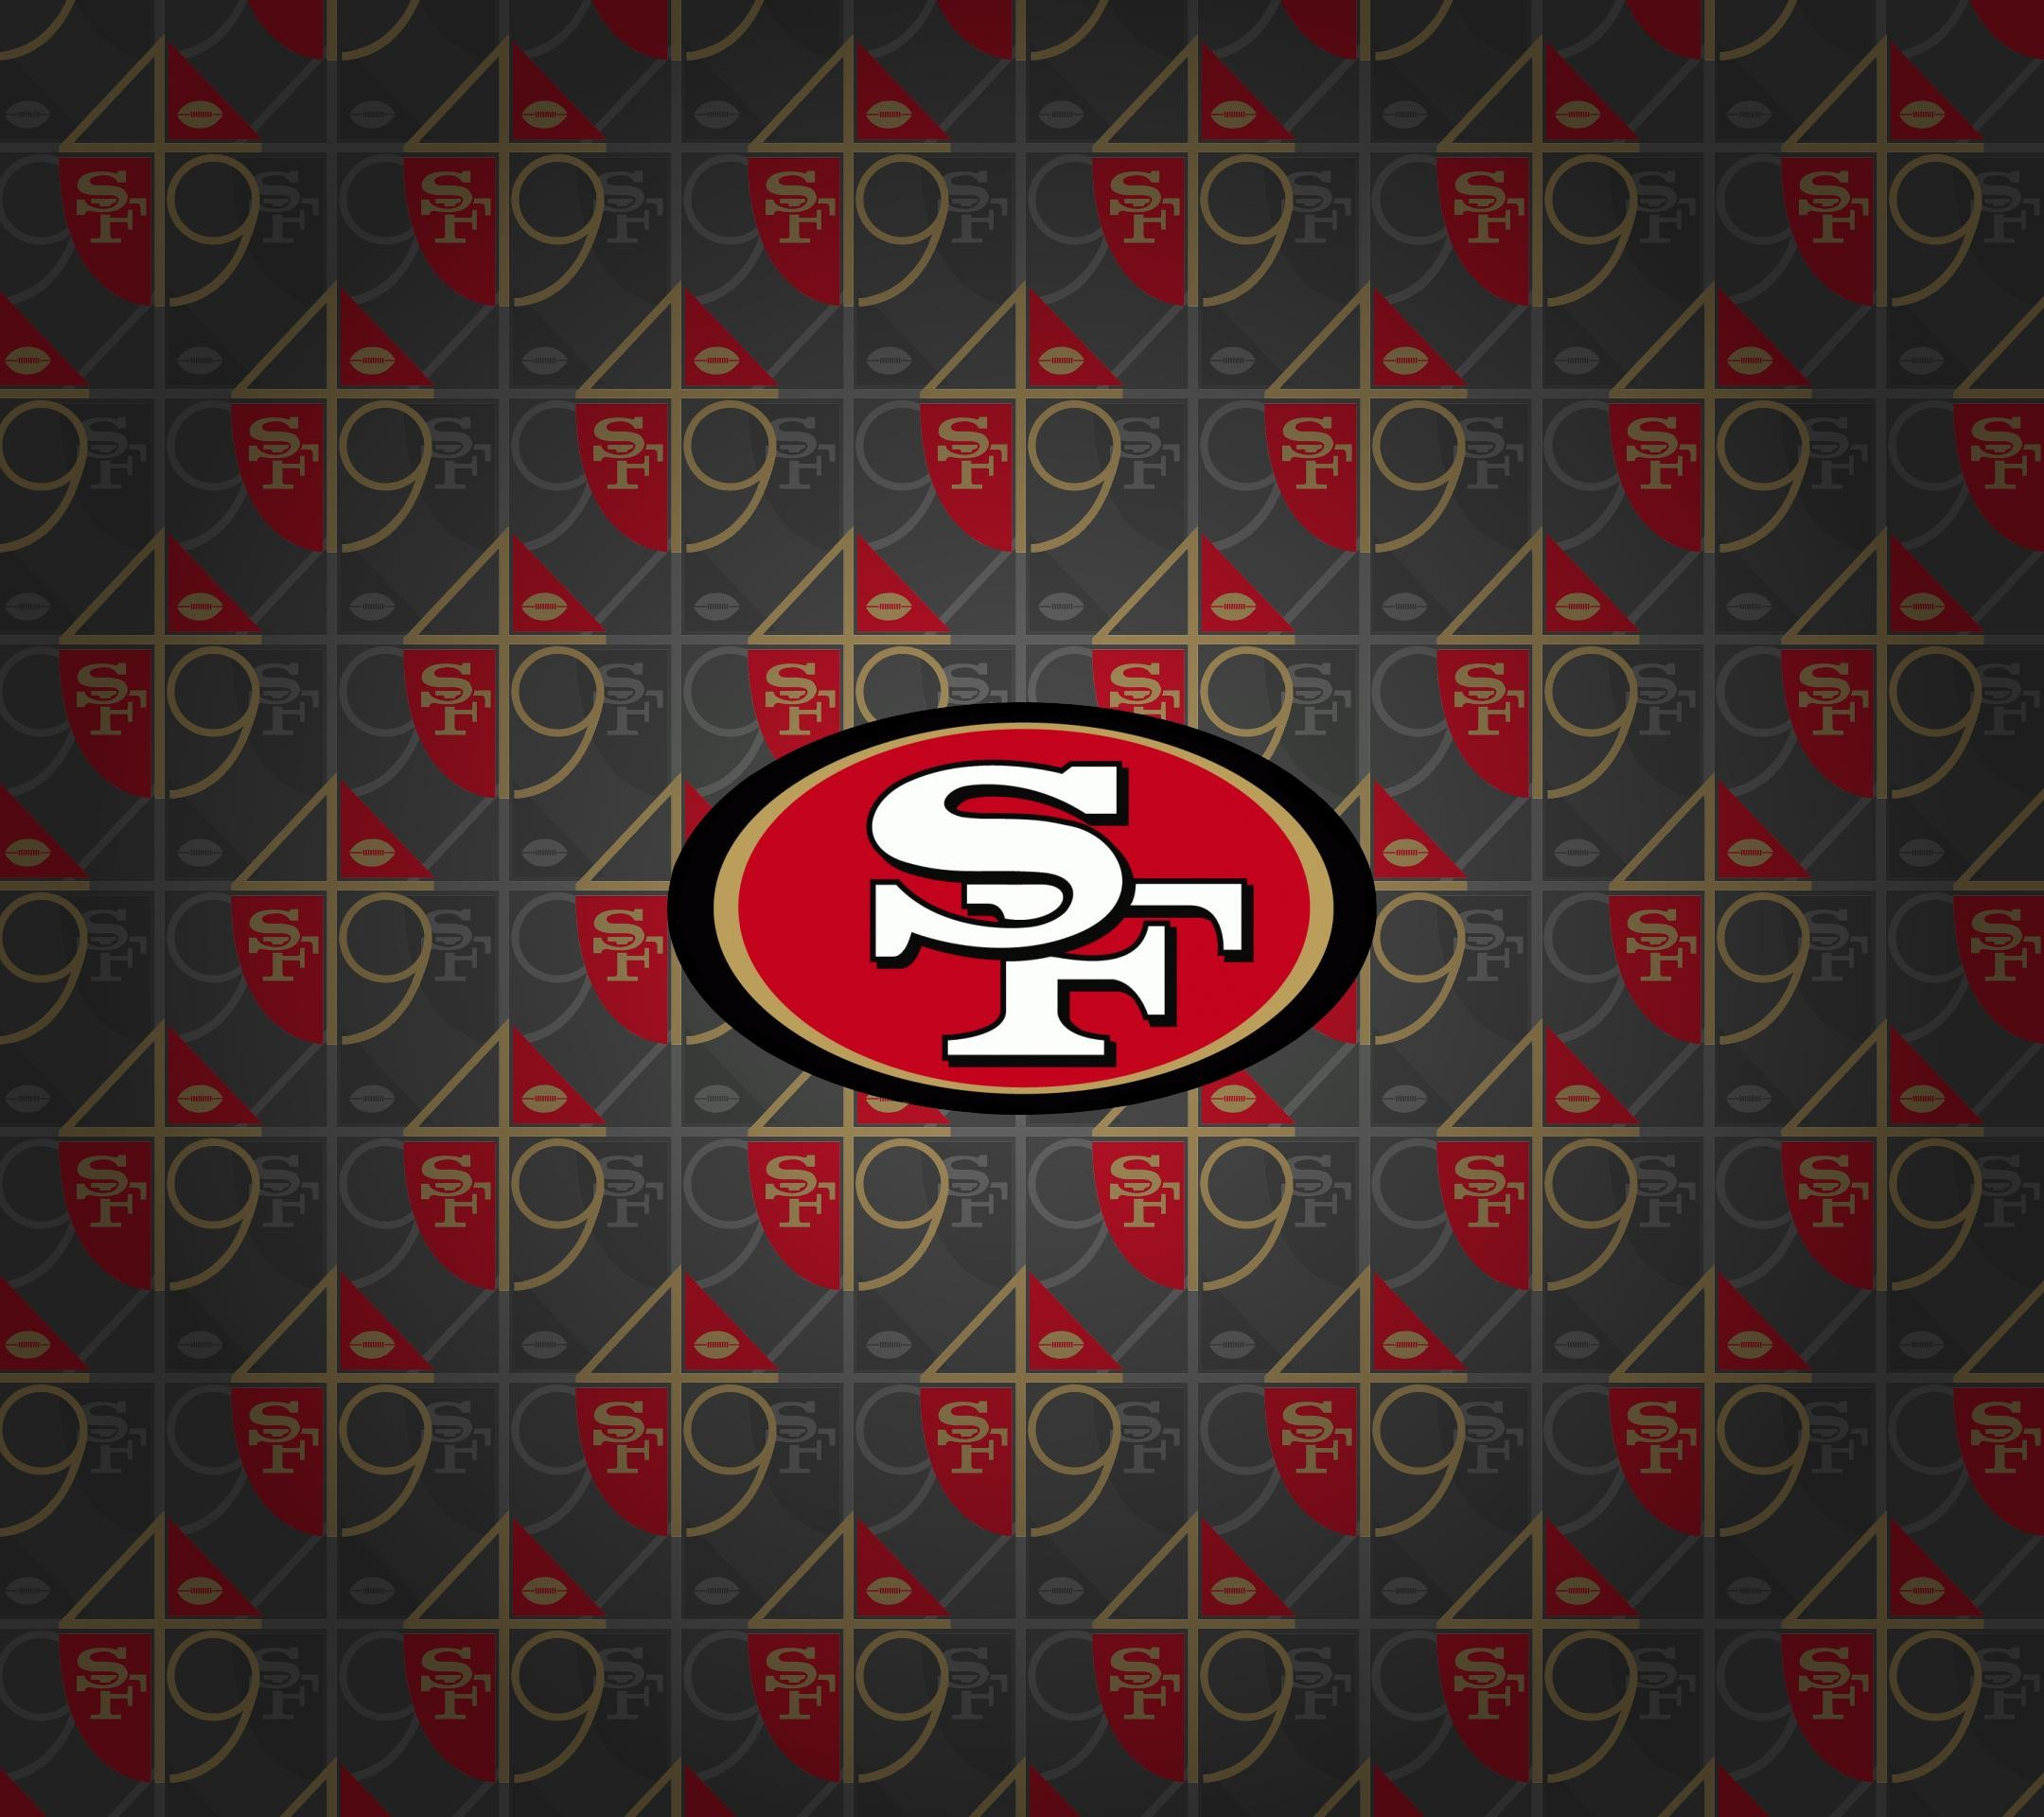 49ers wallpaper hd 66 images